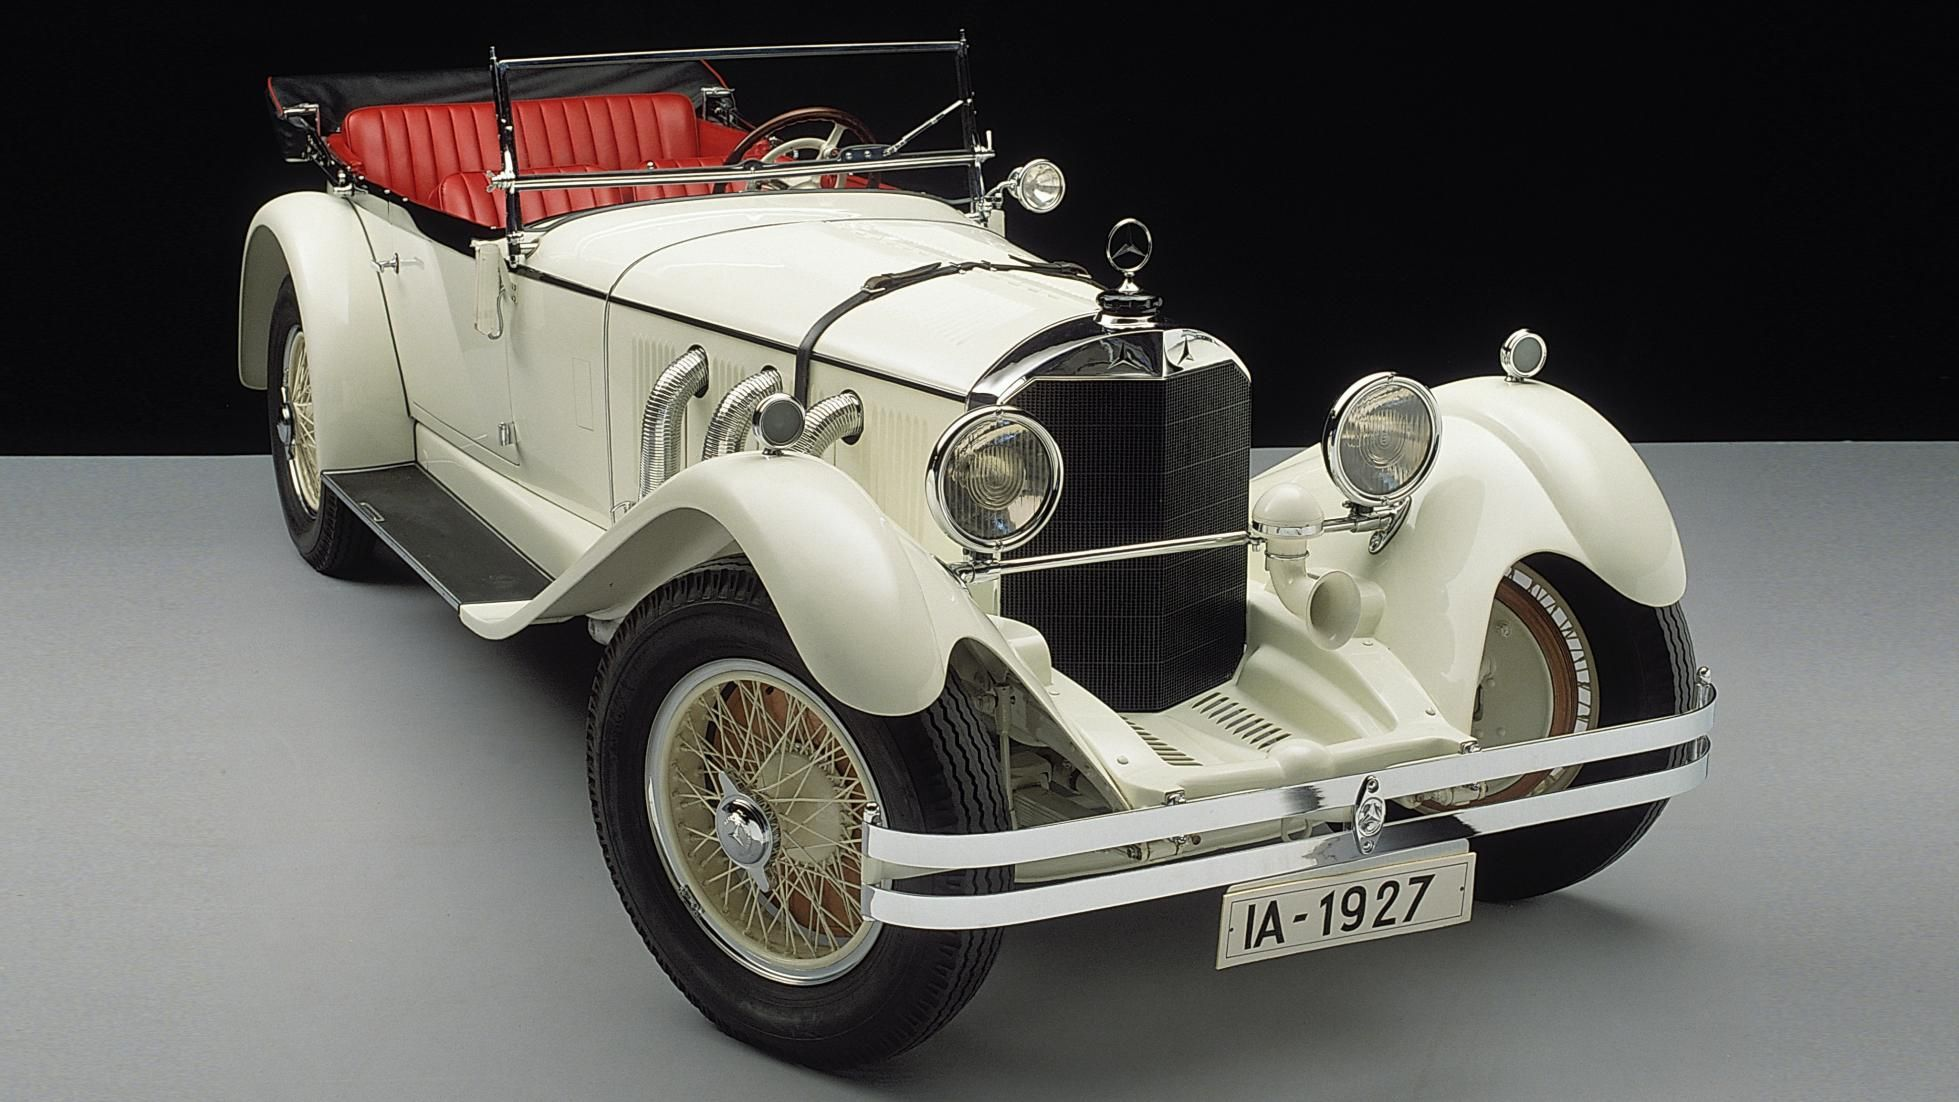 This Mercedes won the Nürburgring's very first race